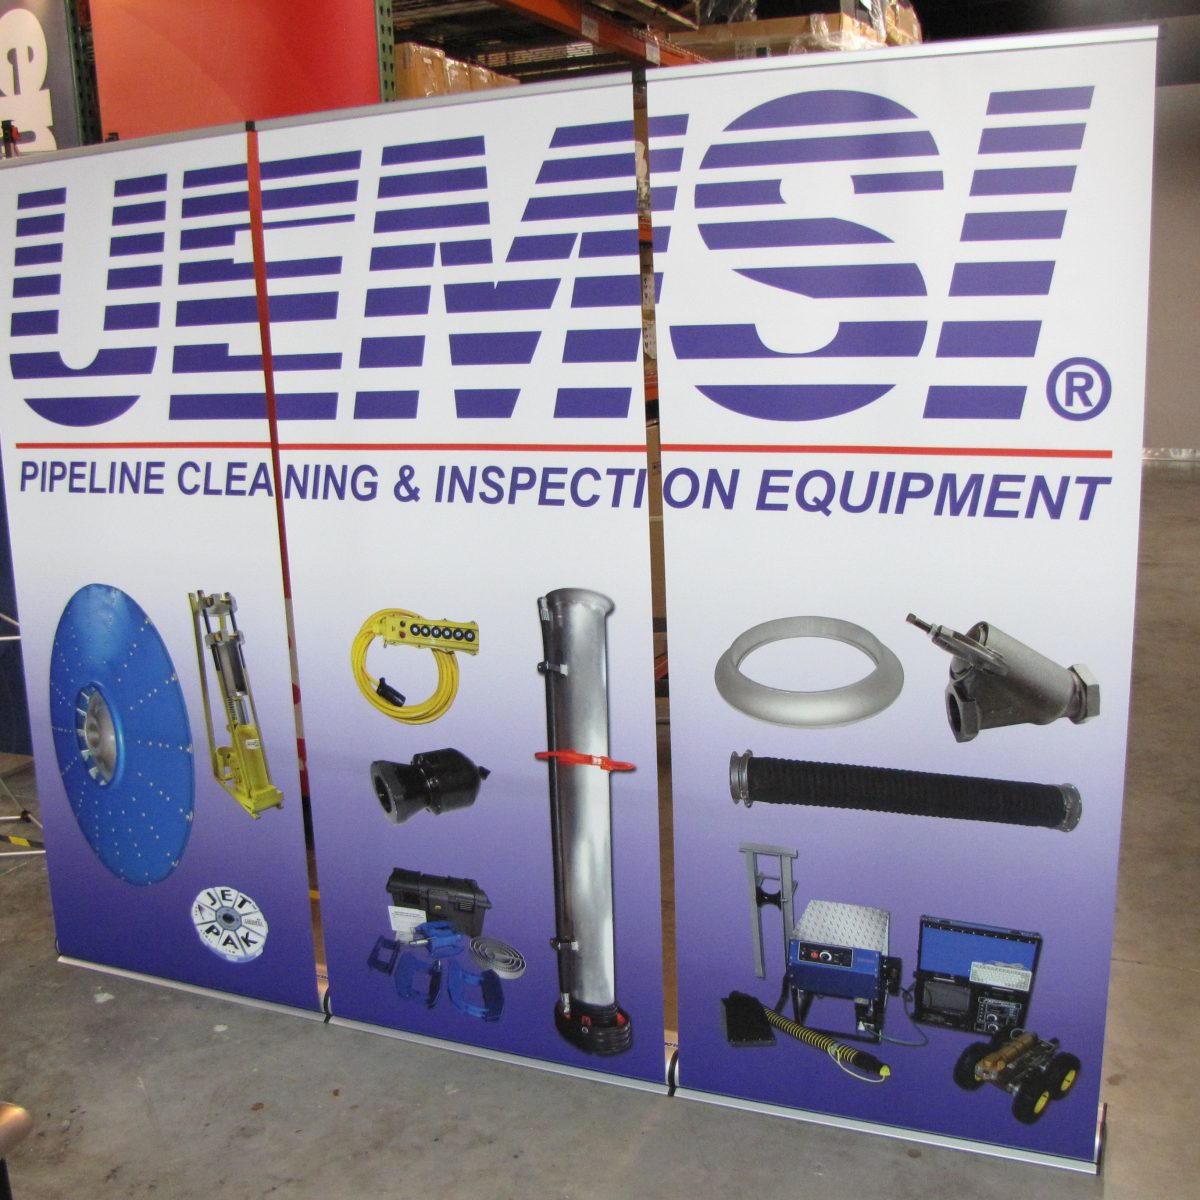 11) Retractable Banner Wall